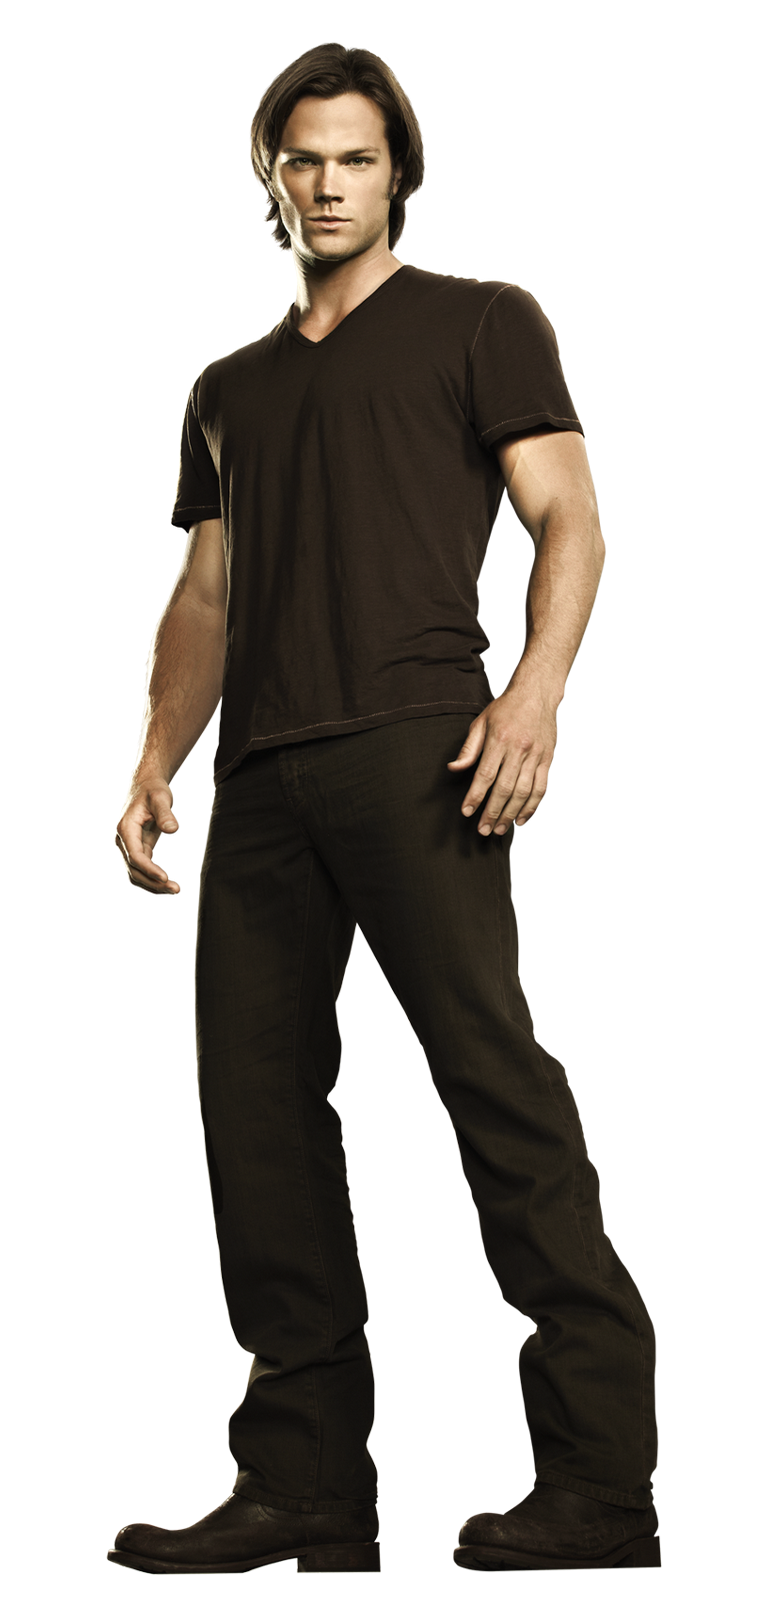 Sam Winchester Png, png collections at sccpre.cat.